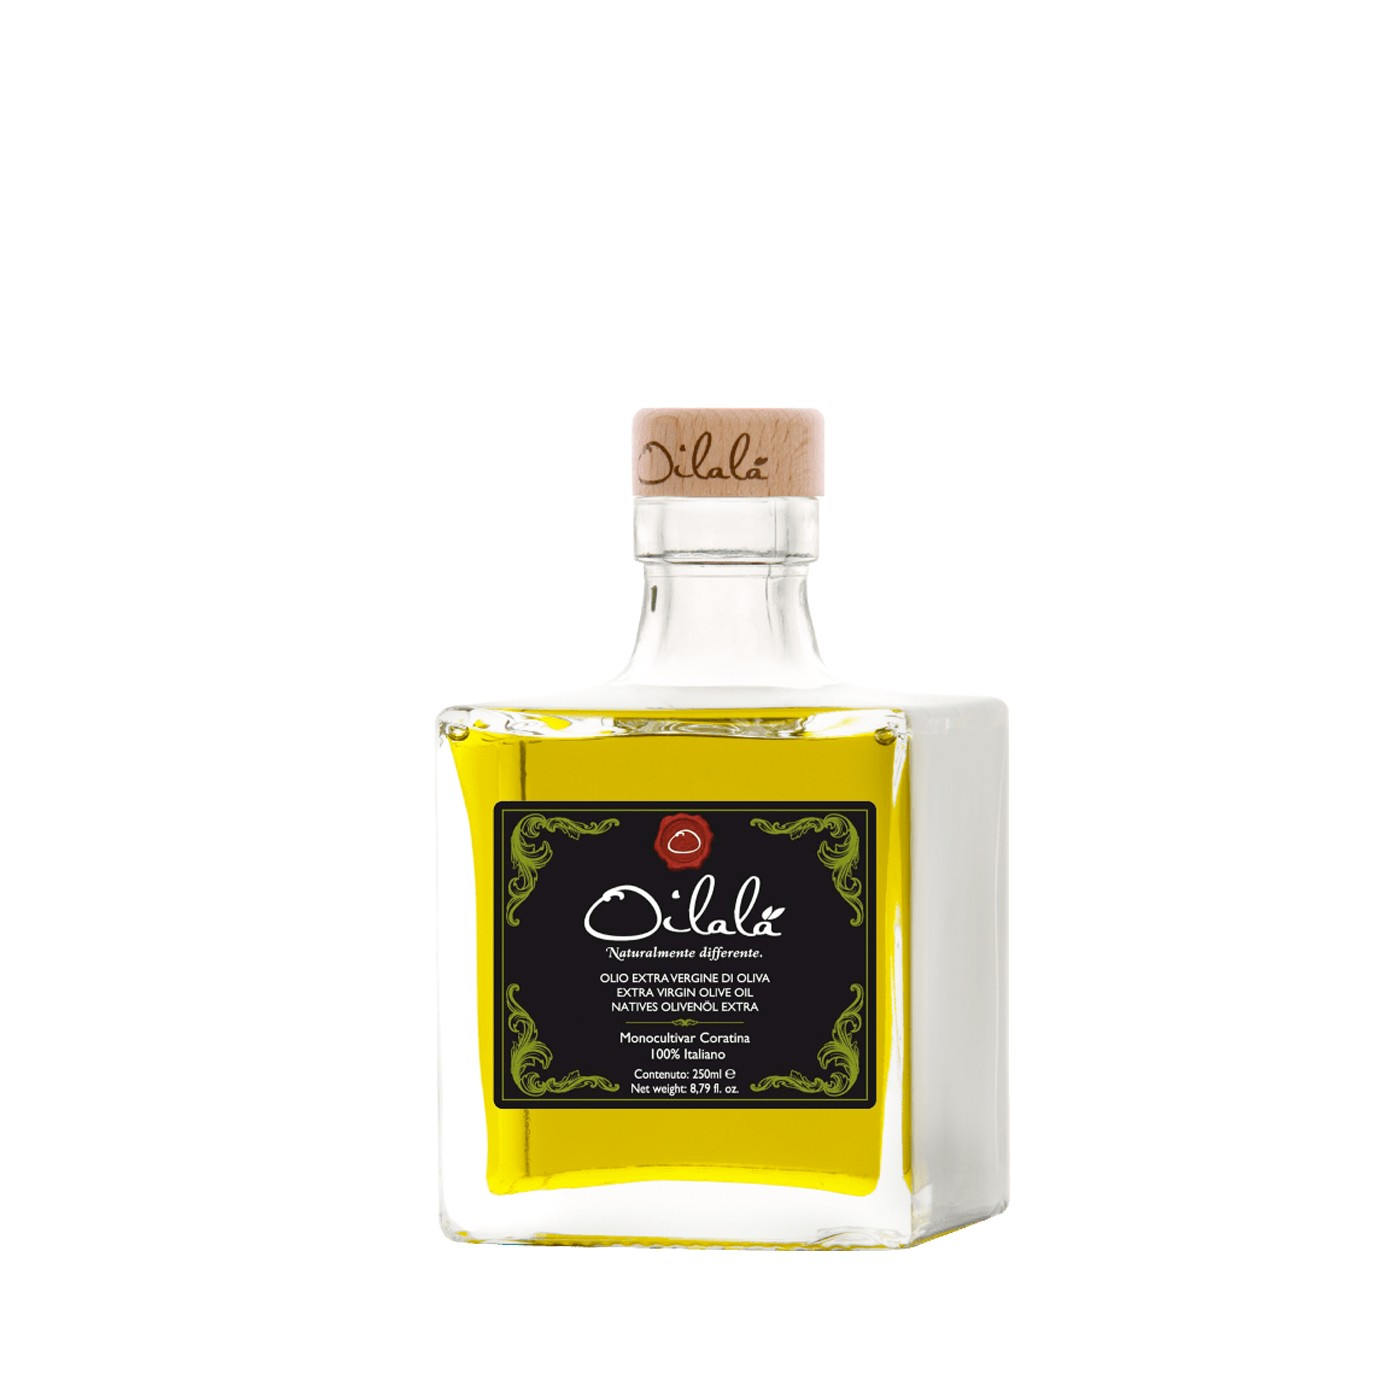 Coratina Extra Virgin Olive Oil 8.45 oz